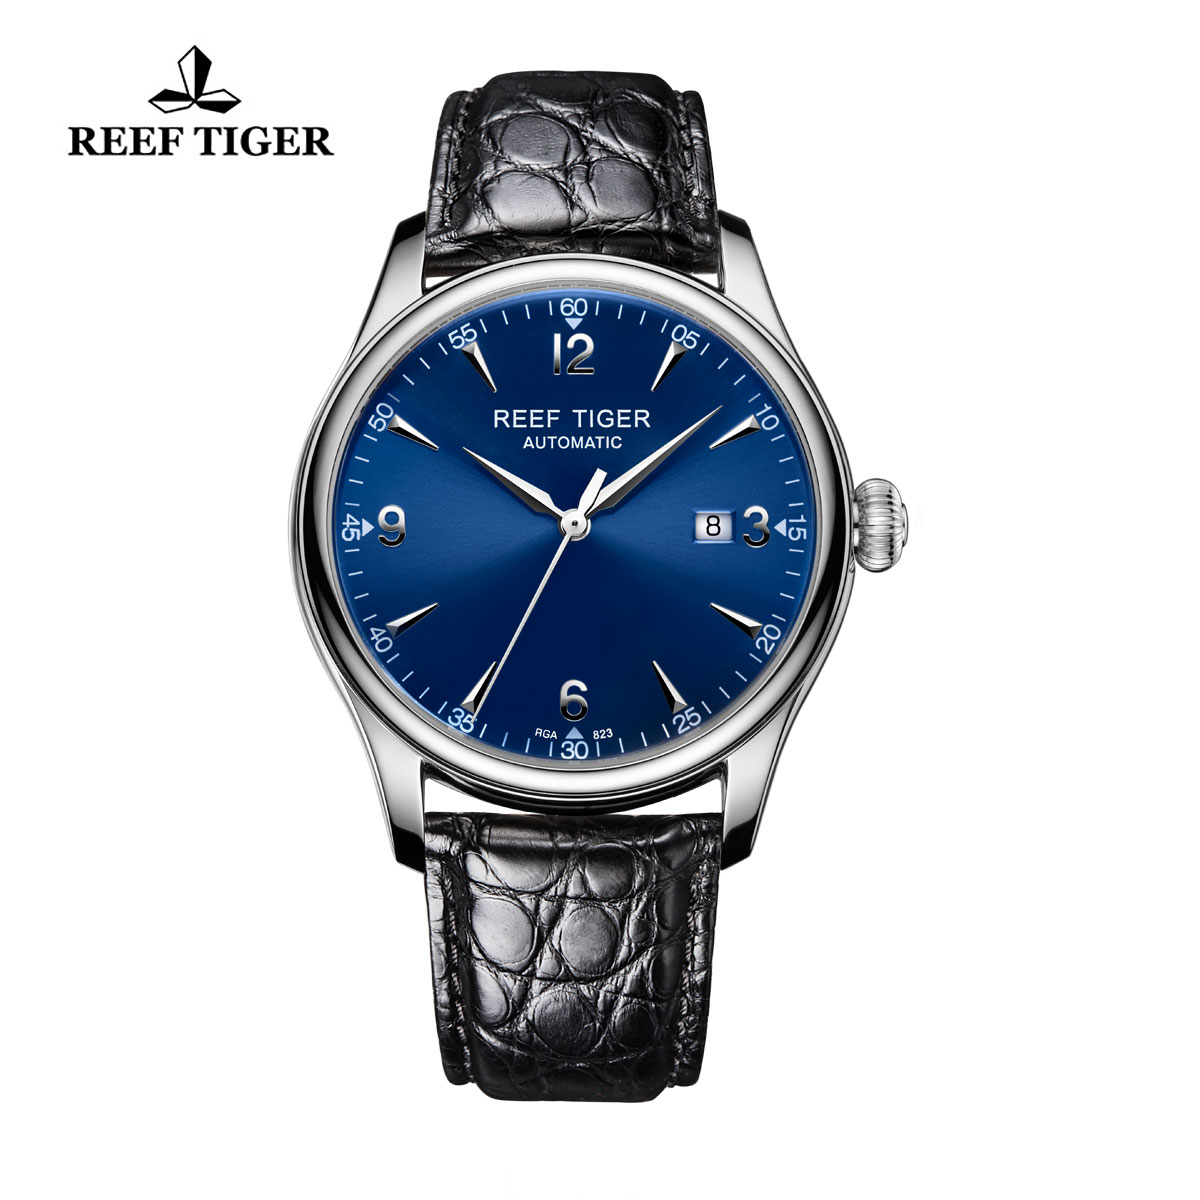 Reef Tiger Heritage Dress Automatic Watch Blue Dial Alligator Strap Steel Case RGA823-YLA